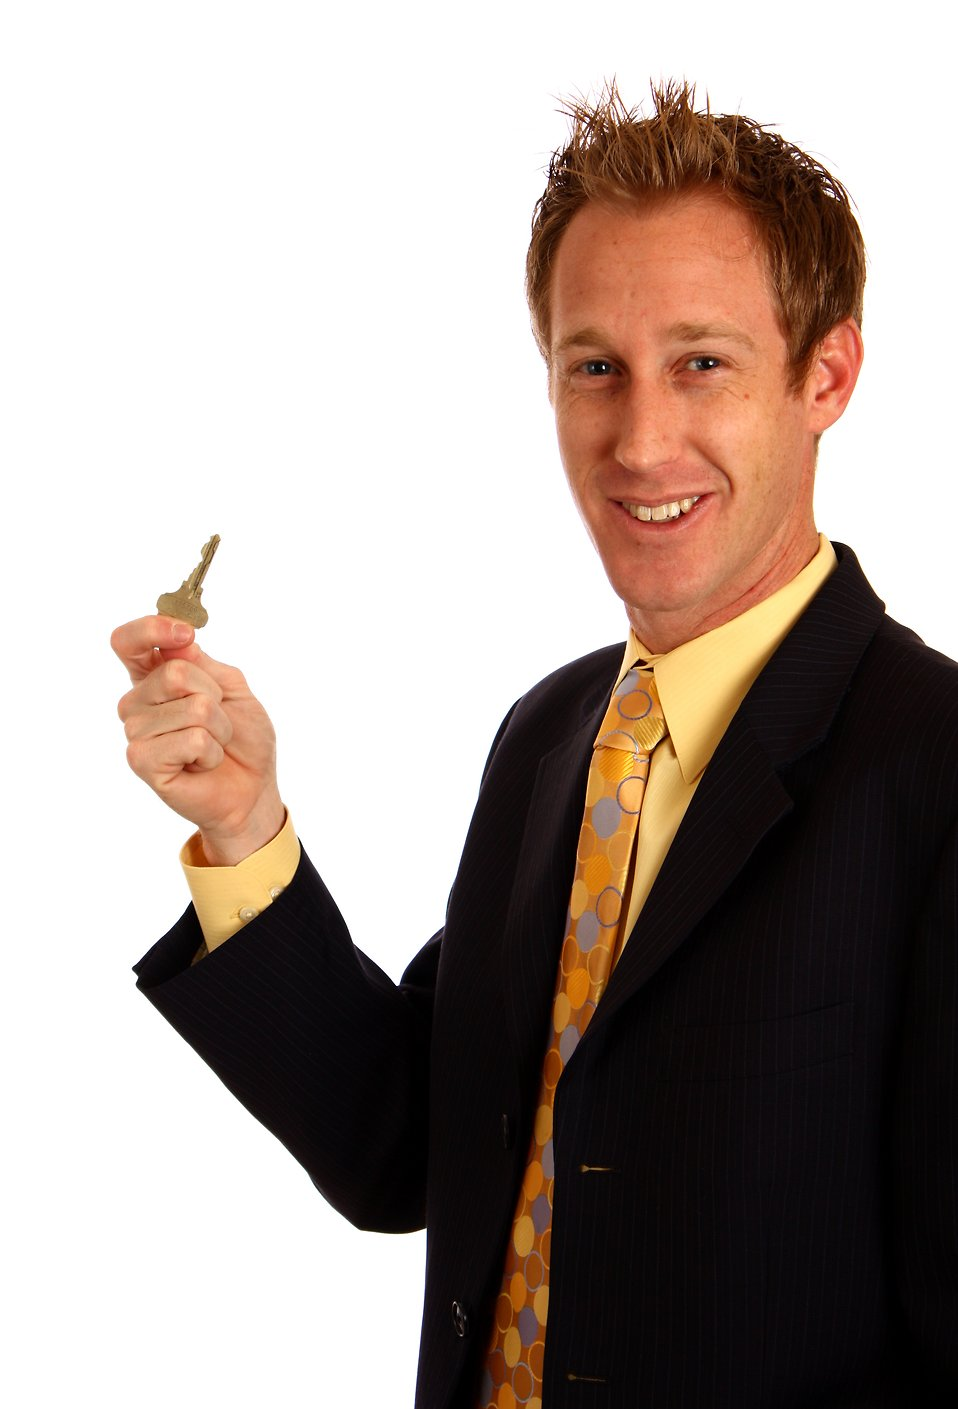 A young businessman in a suit holding a key : Free Stock Photo